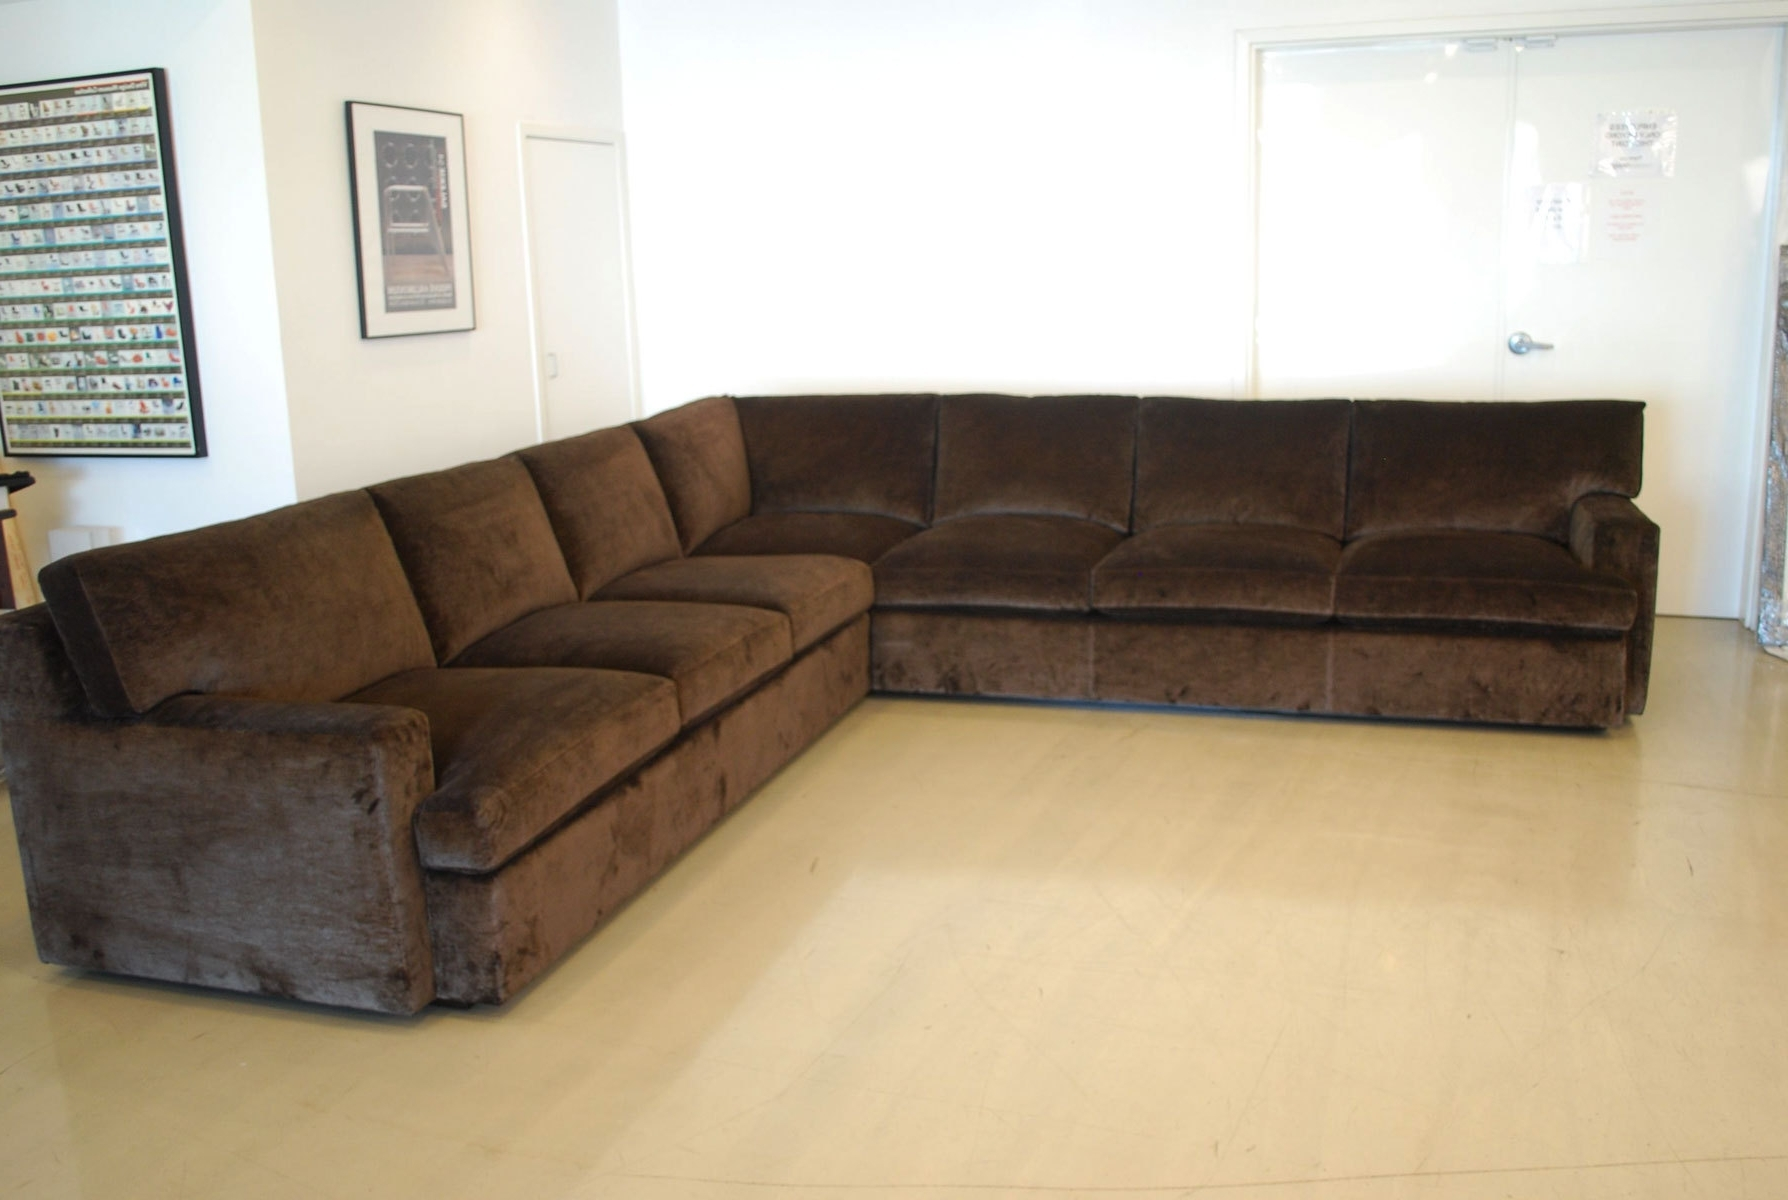 Sectional Sofas At Brick Throughout Favorite Amusing Large L Shaped Sectional Sofas 99 On The Brick Sofa Bed (View 5 of 20)